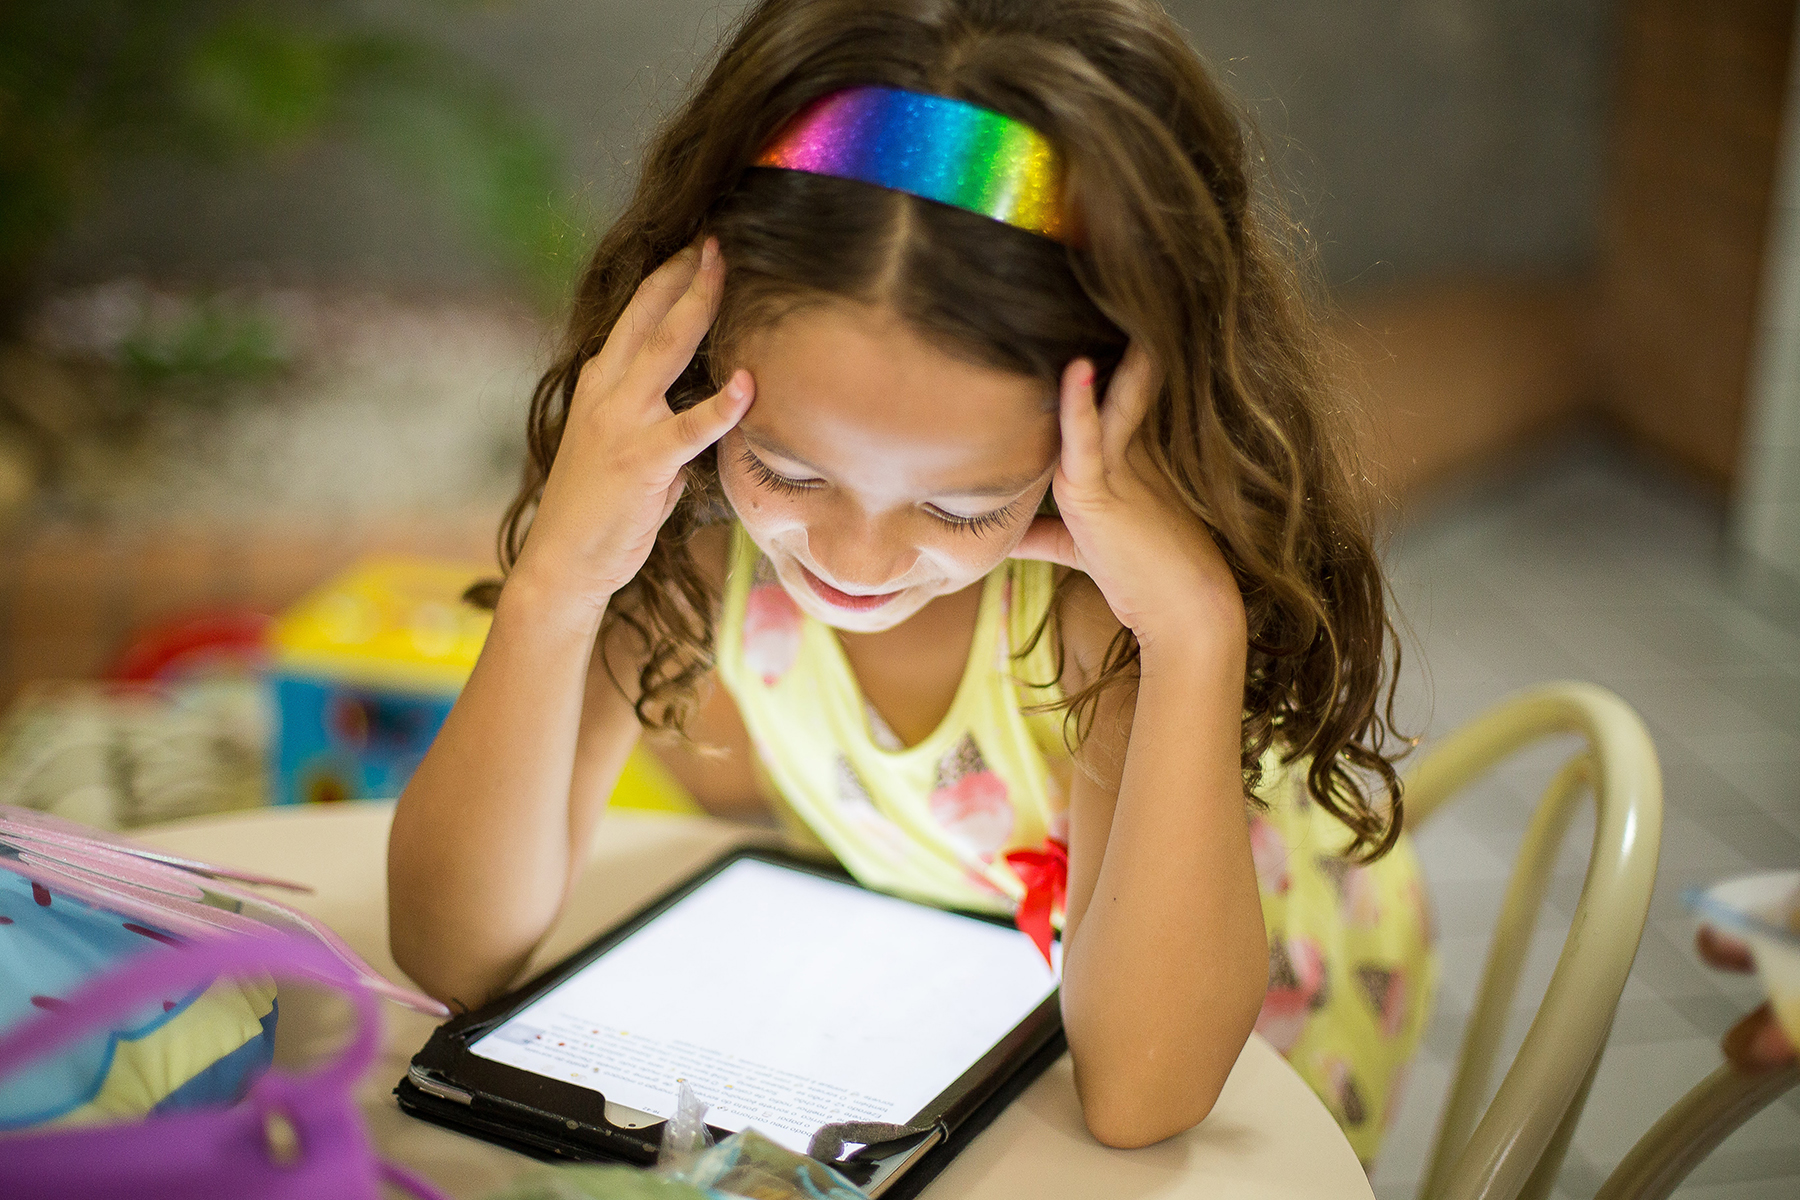 Girl smiles at tablet